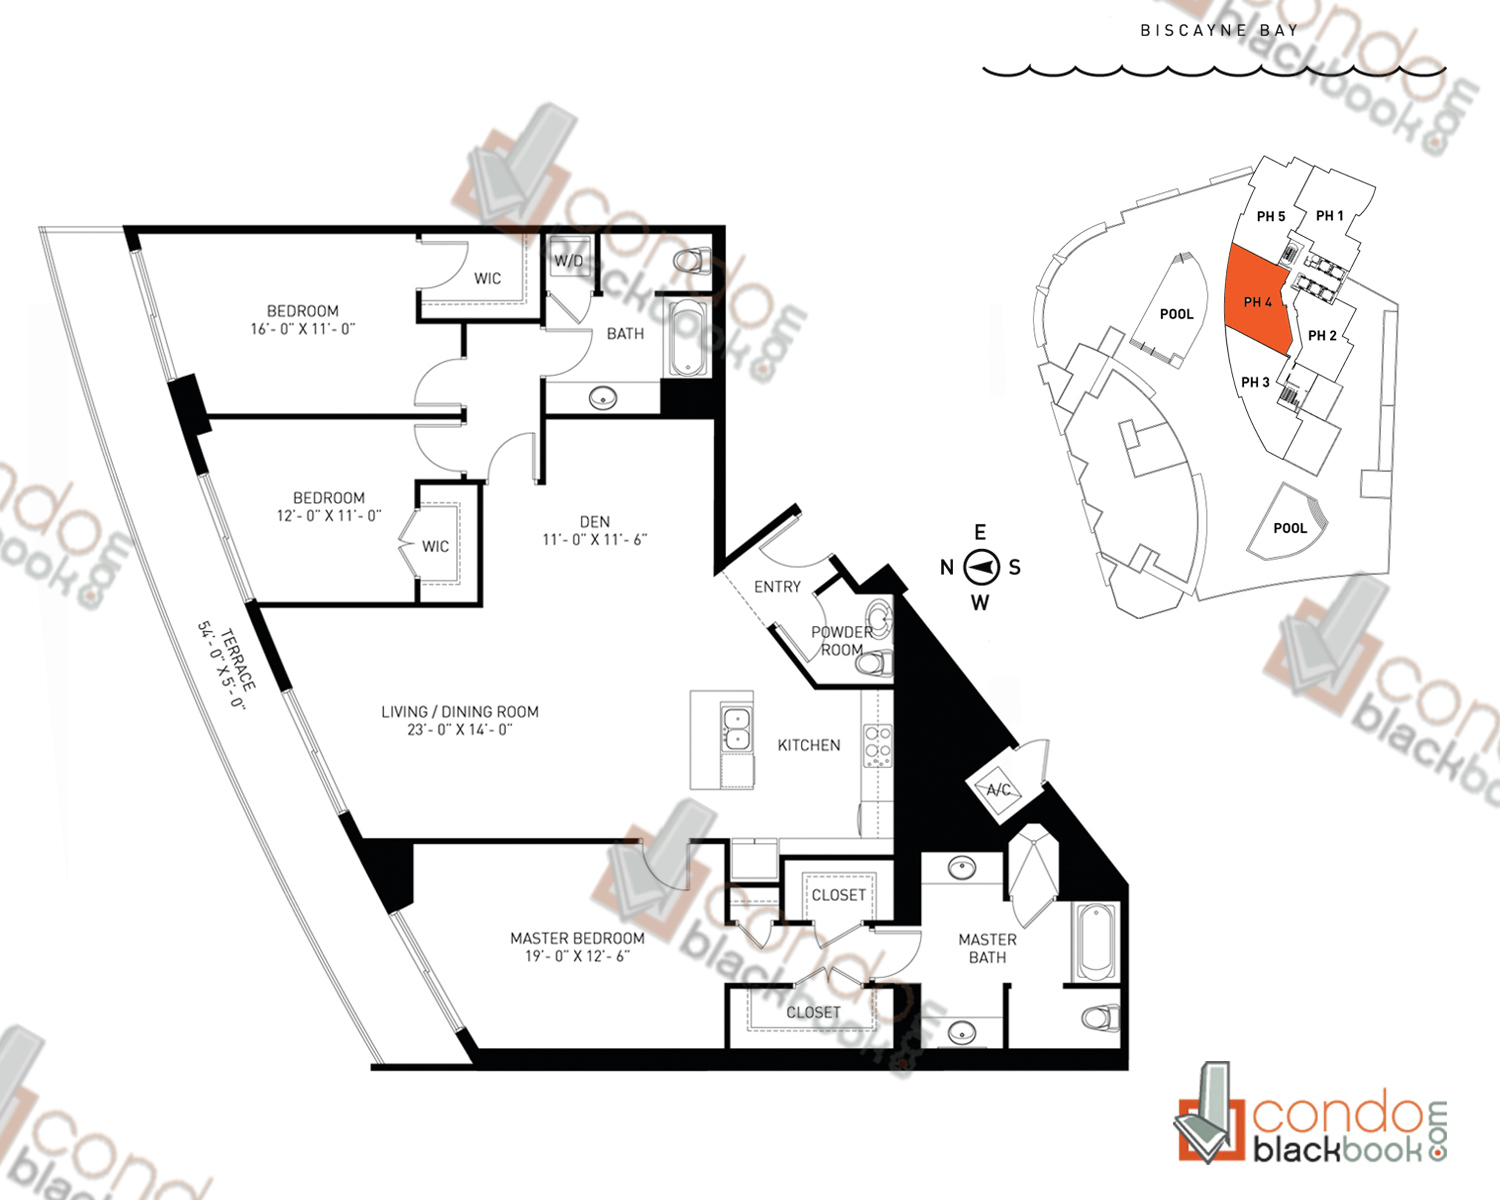 Floor plan for Quantum on the Bay Edgewater Miami, model PH_4, line South Tower - 04, 3/2.5 +Den bedrooms, 1,936 sq ft